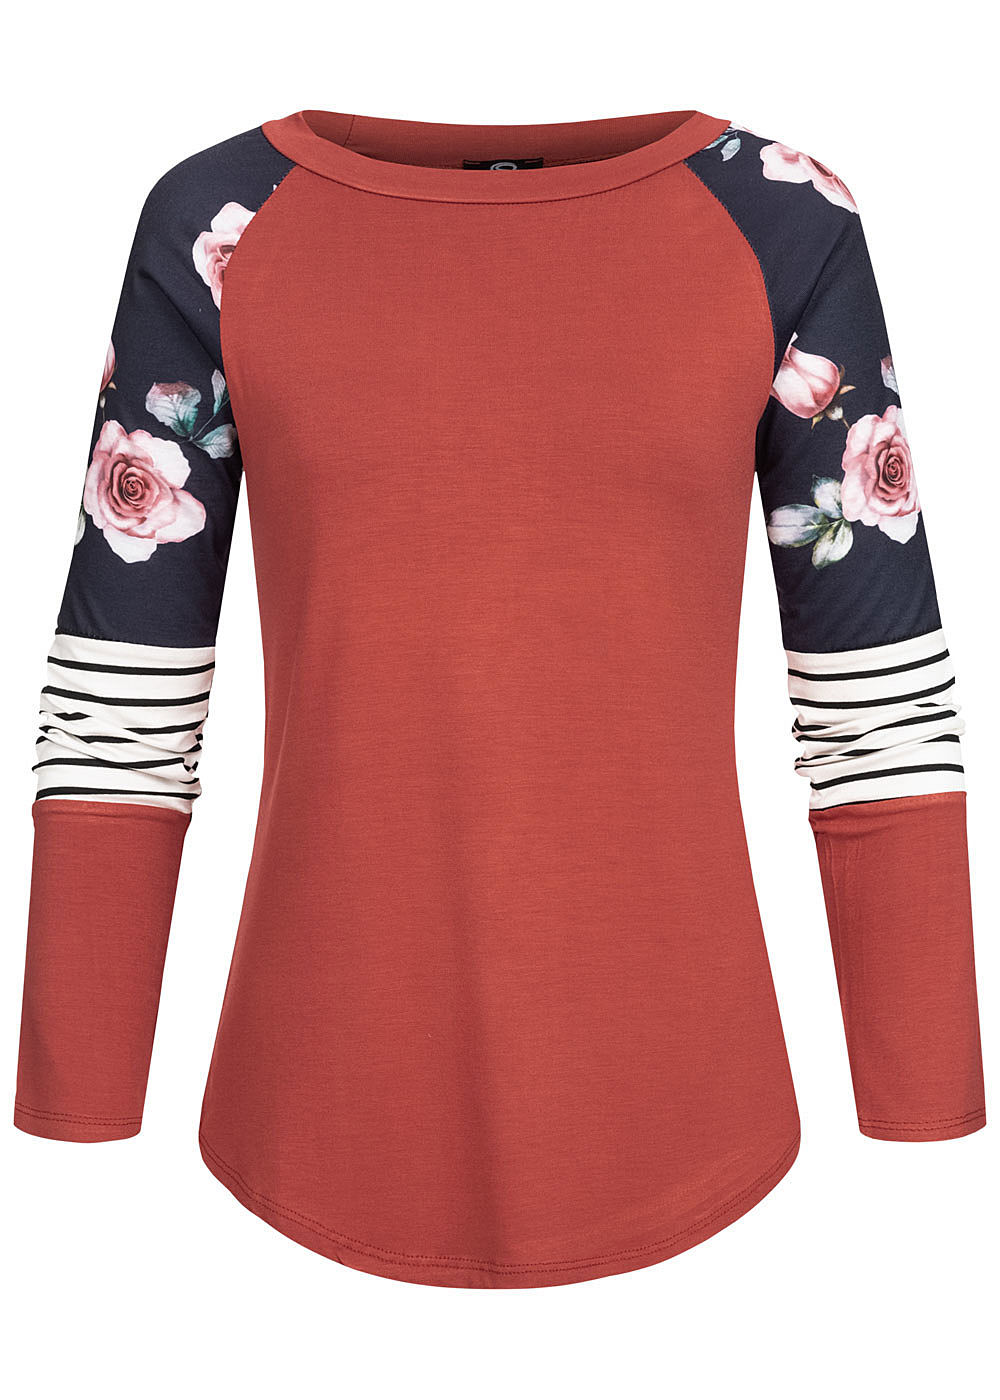 Styleboom Fashion Damen Colorblock Longsleeve Streifen & Blumen Print indian rot - Art.-Nr.: 20036296